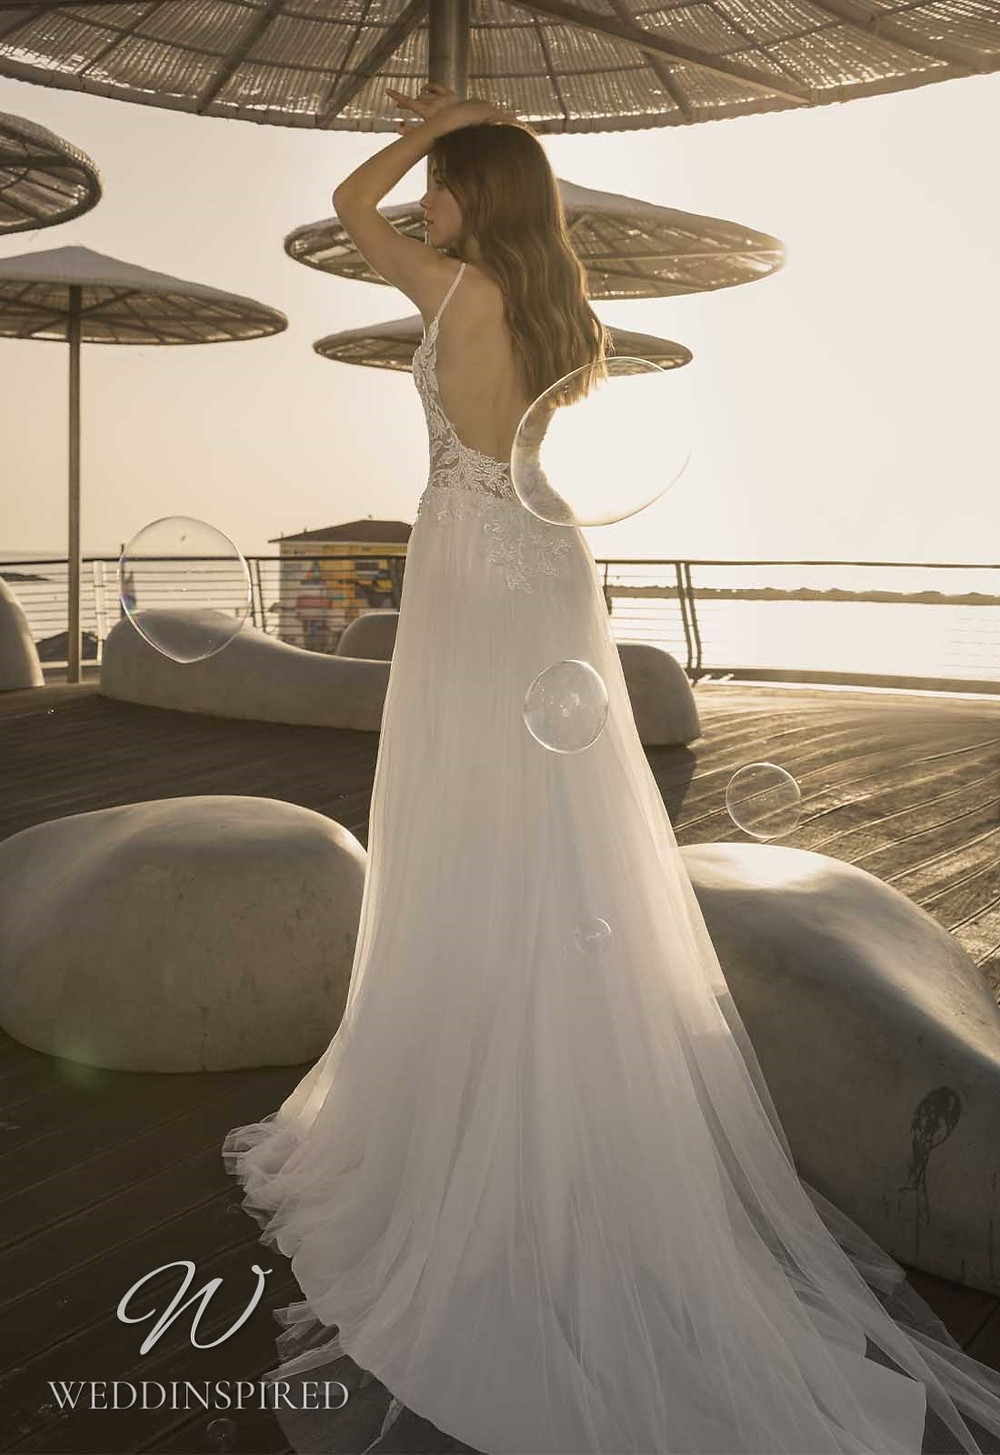 A Pnina Tornai 2021 backless lace and tulle A-line wedding dress